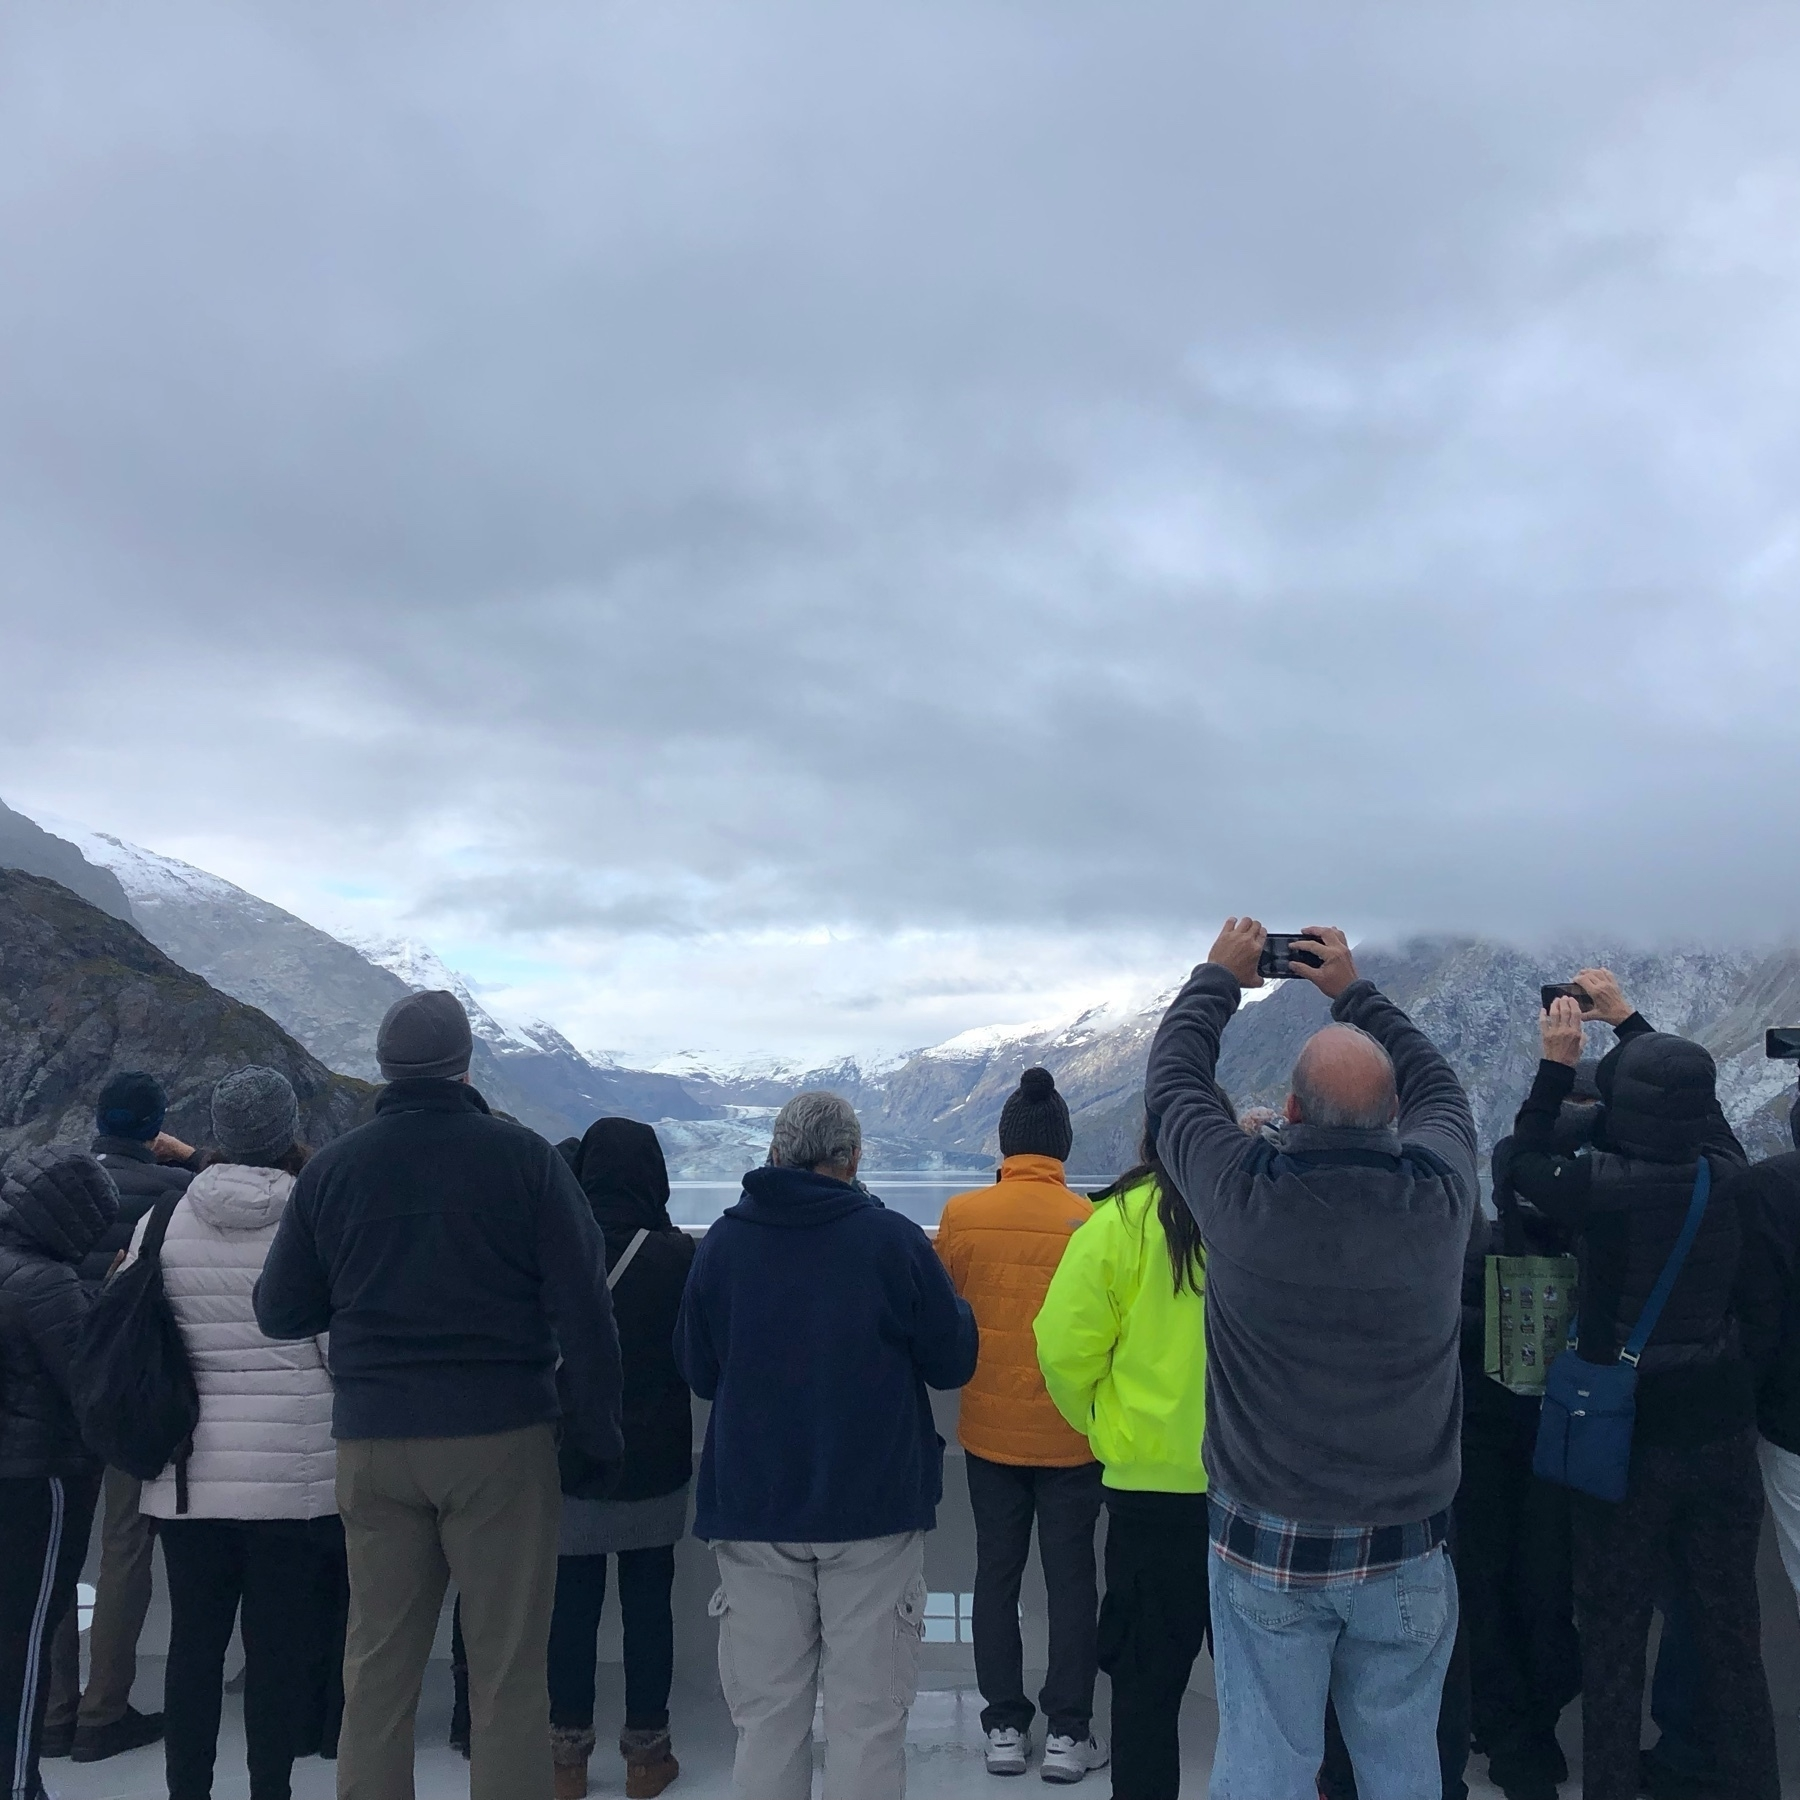 A dozen middle-aged cruise passengers in winter coats and hats hold up phones and cameras as the bow of the ship approaches a watery inlet. Tall frosty mountains in the distance add an element of adventure.